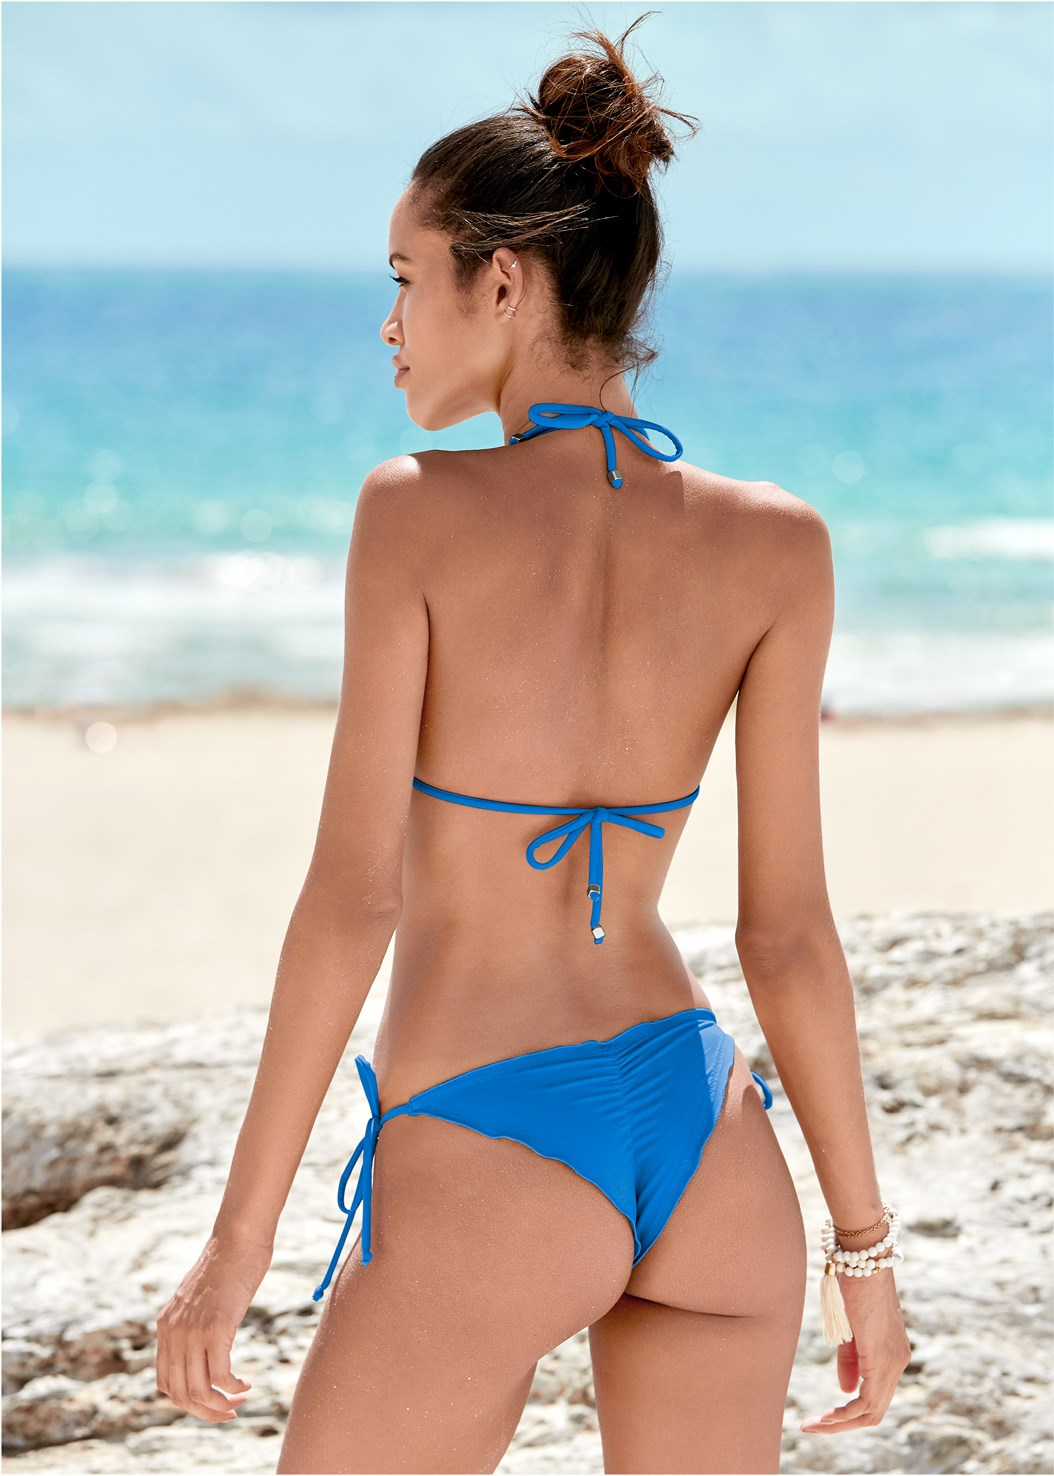 Cheeky Tie Side Bottom,Triangle String Bikini Top,Enhancer Push Up Ring Halter Triangle Top ,Lovely Lift Wrap Bikini Top,Jersey Fishnet Cover-Up Jumpsuit